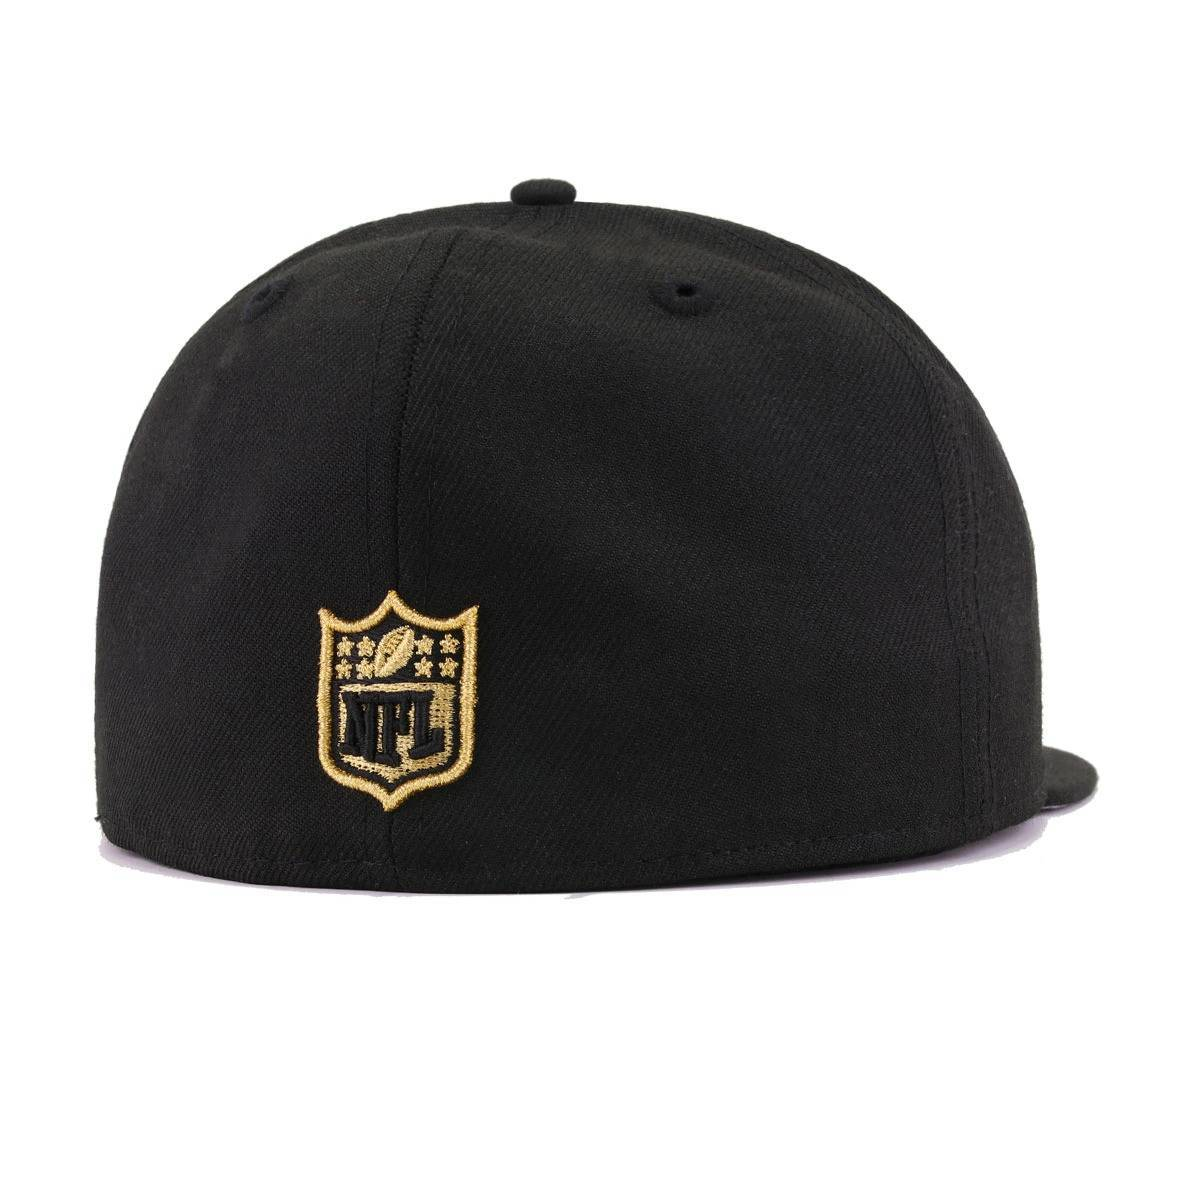 New England Patriots Black Metallic Gold New Era 59Fifty Fitted